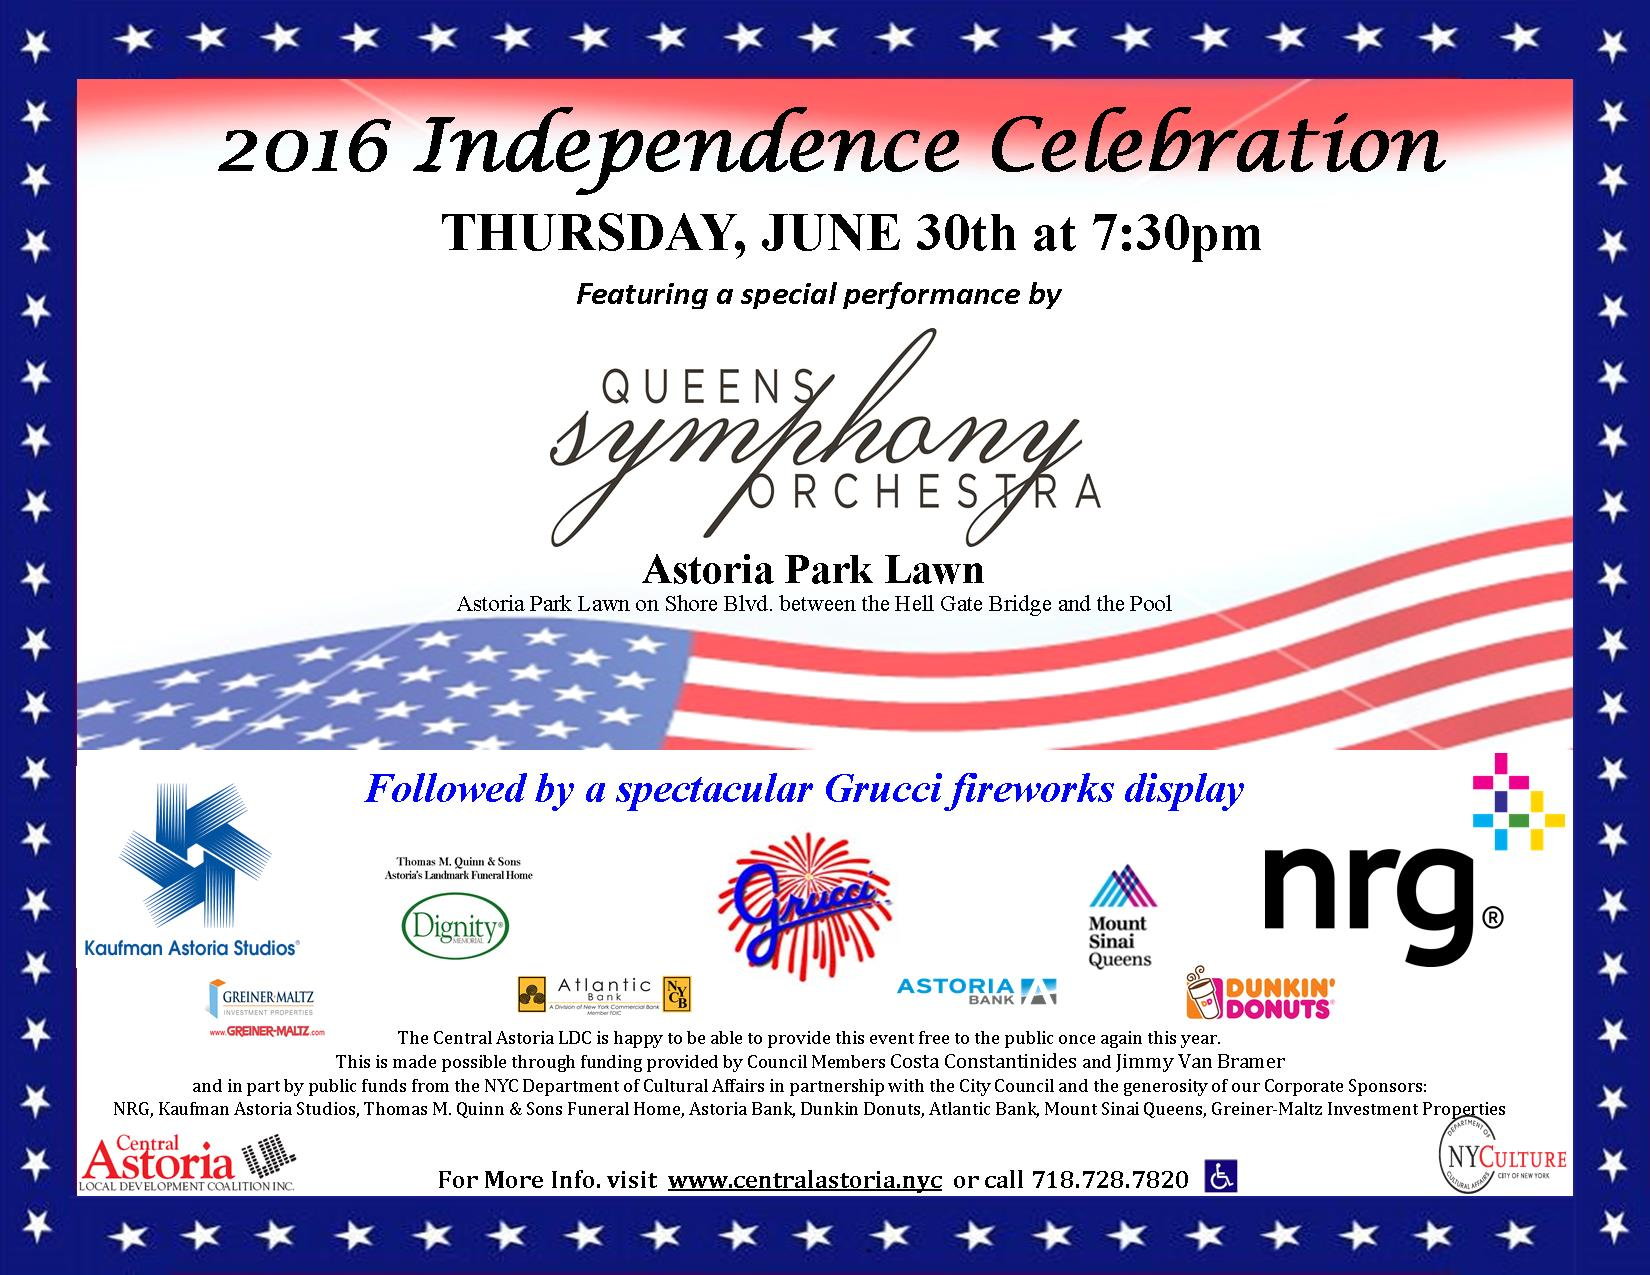 2016 Independence Celebration FINAL with sponsorship logos.jpg